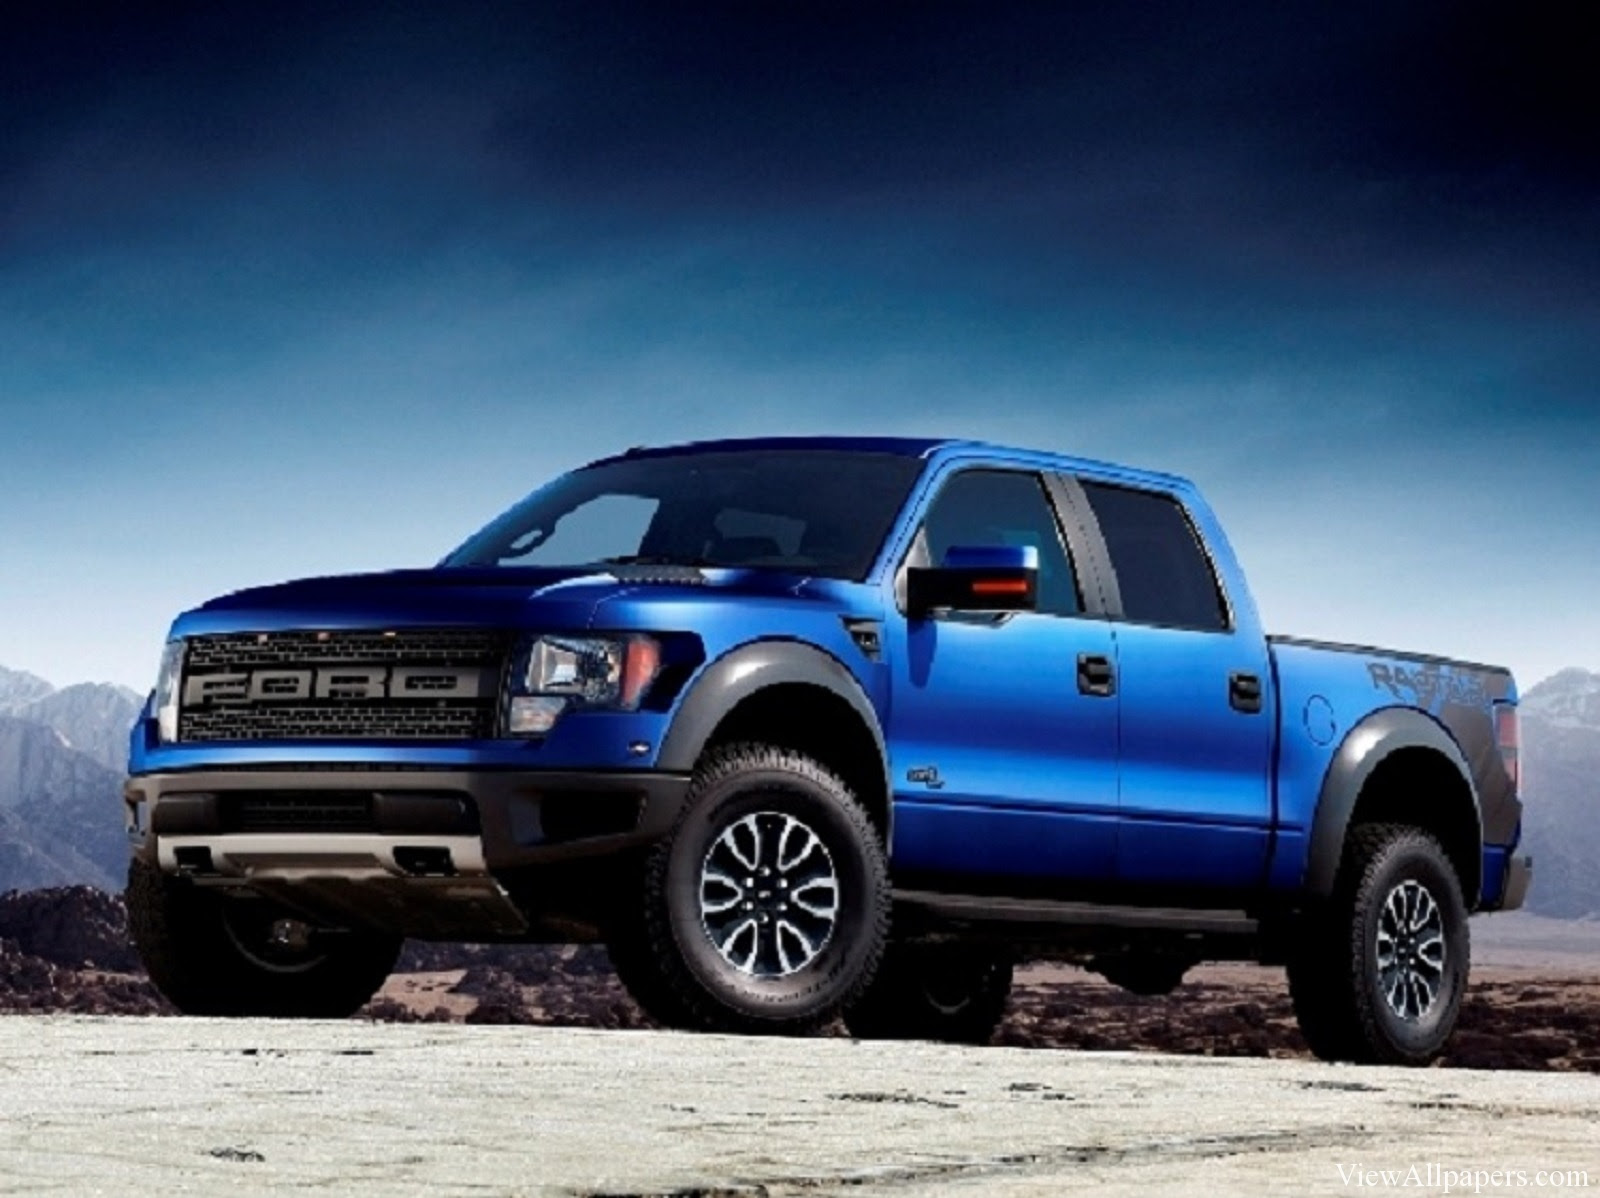 Ford Raptor Wallpaper HD  WallpaperSafari